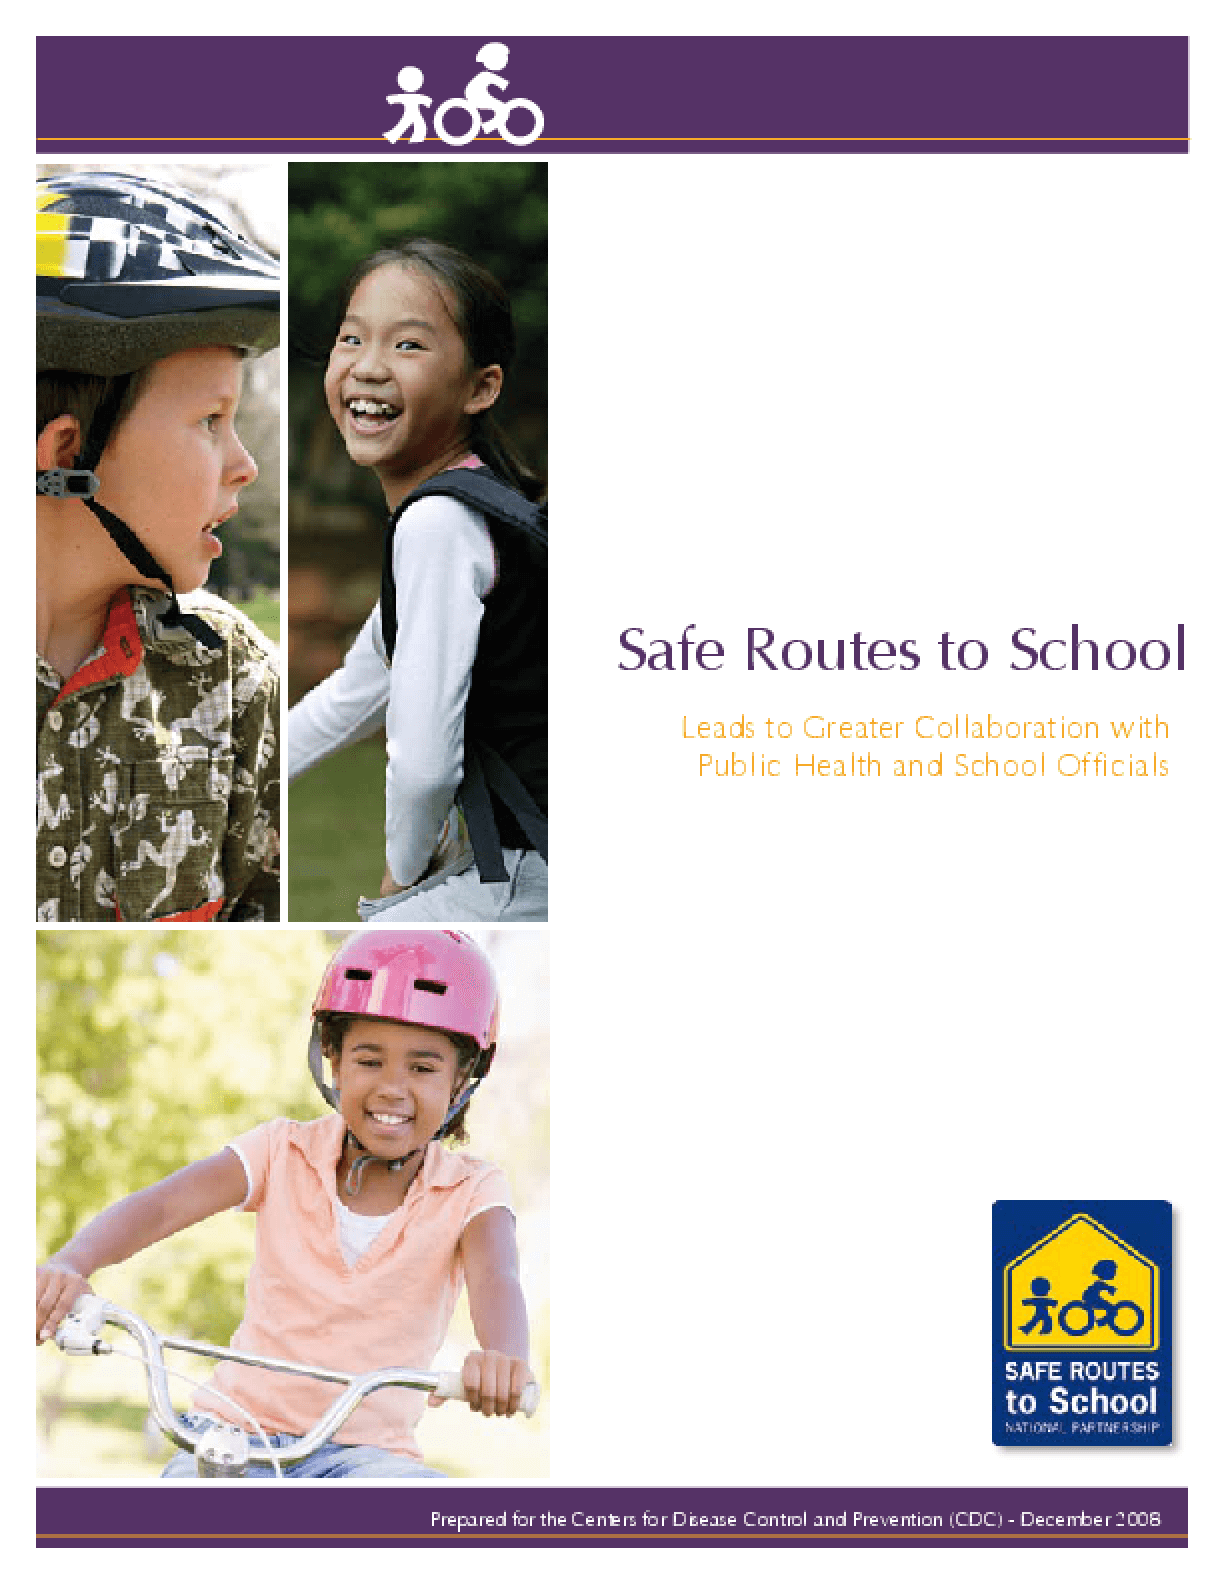 Safe Routes to School Leads to Greater Collaboration with Public Health and School Officials